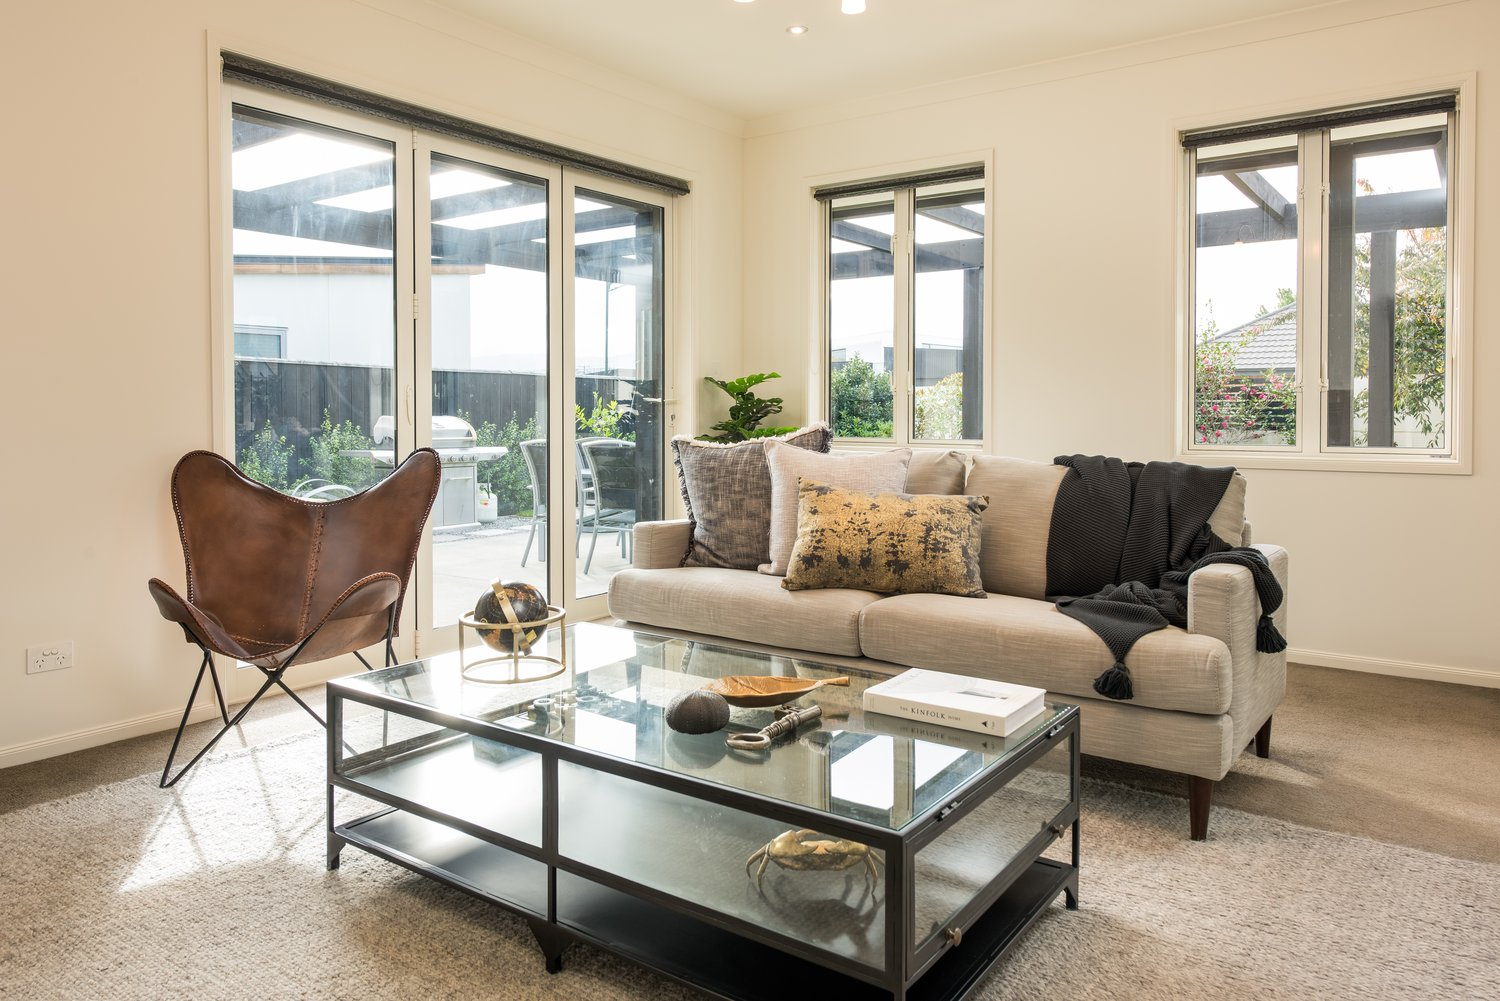 Contact — LA Design - Homestaging & Styling